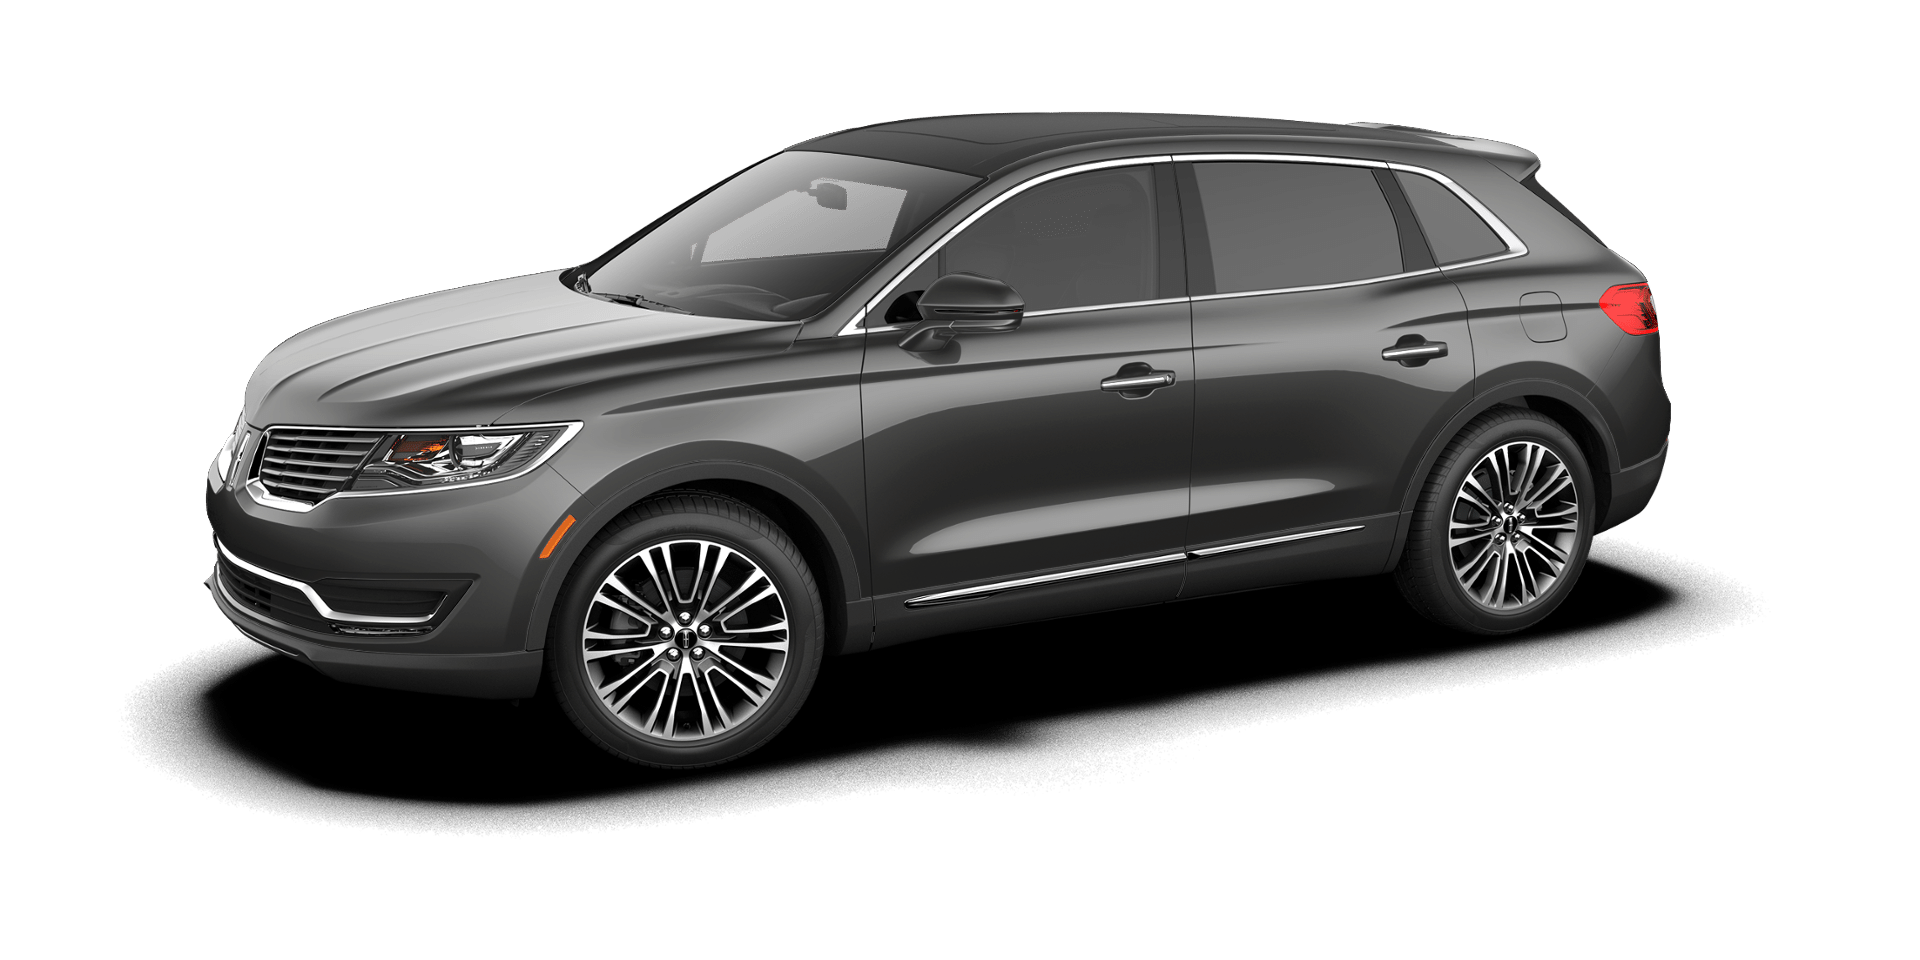 2017 Lincoln Mkx Search Inventory Lincoln Mkx New Lincoln Cars Hybrid Car